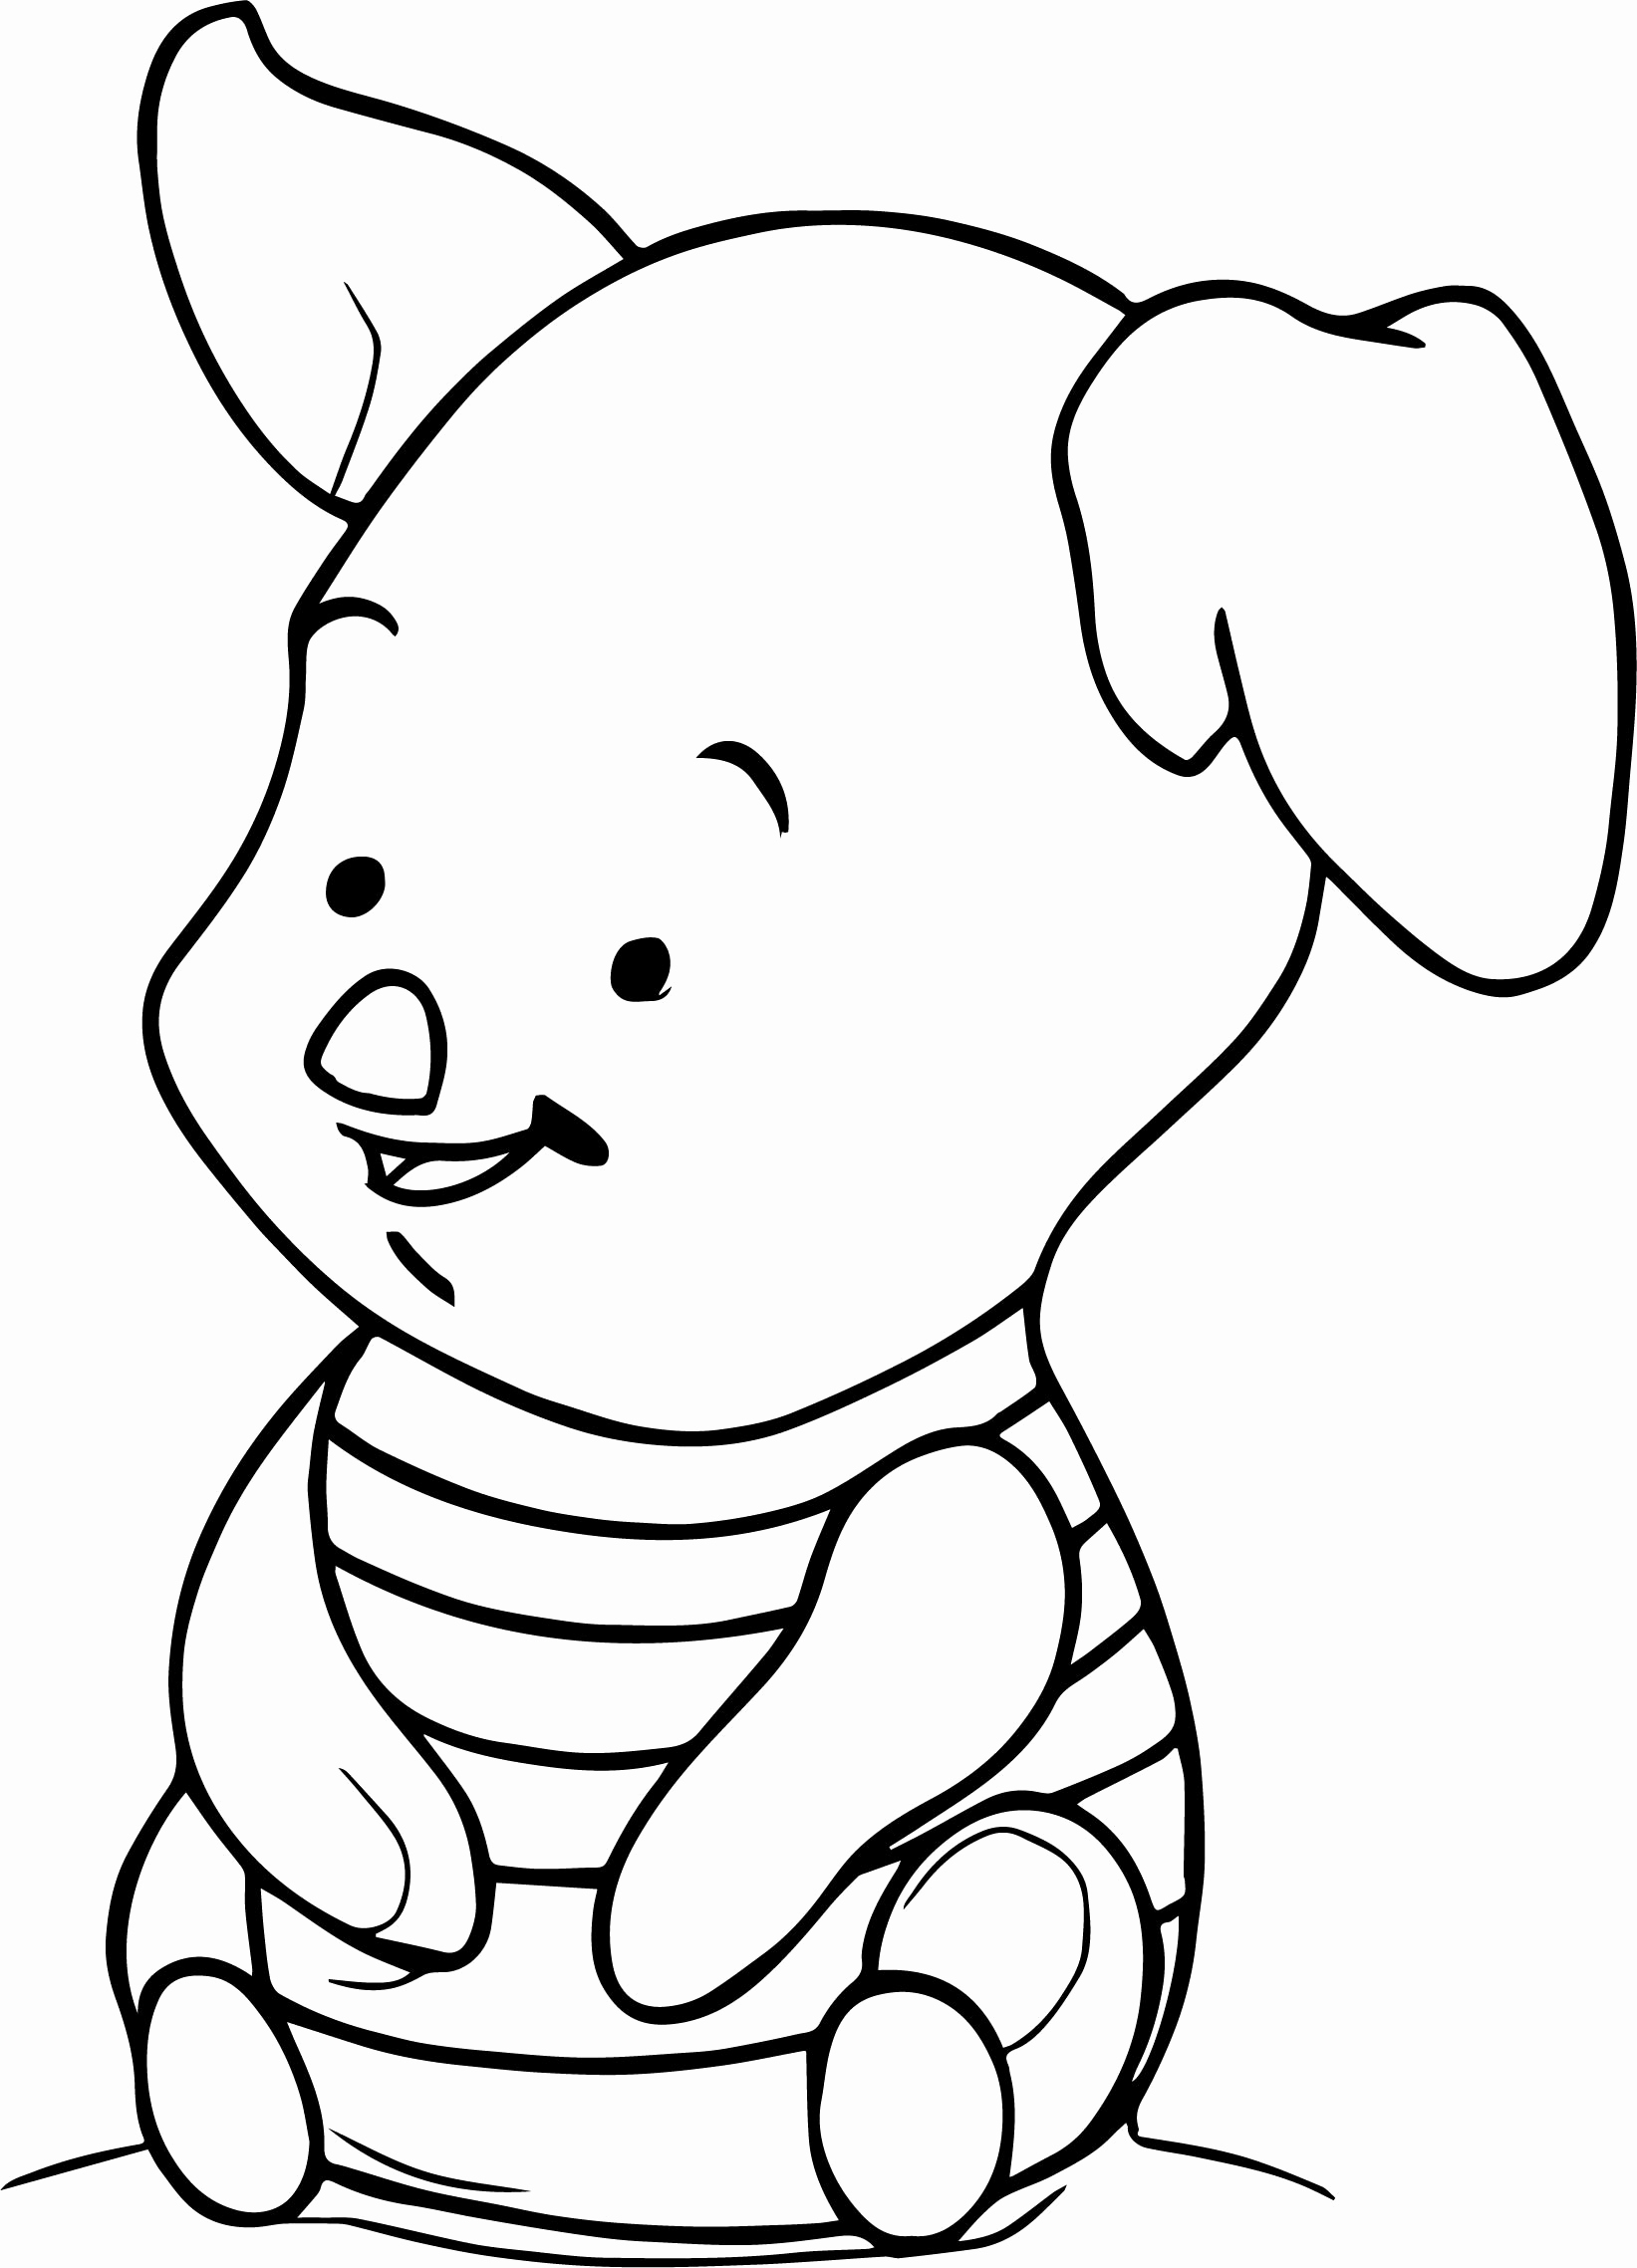 Winnie The Pooh And Piglet Coloring Pages